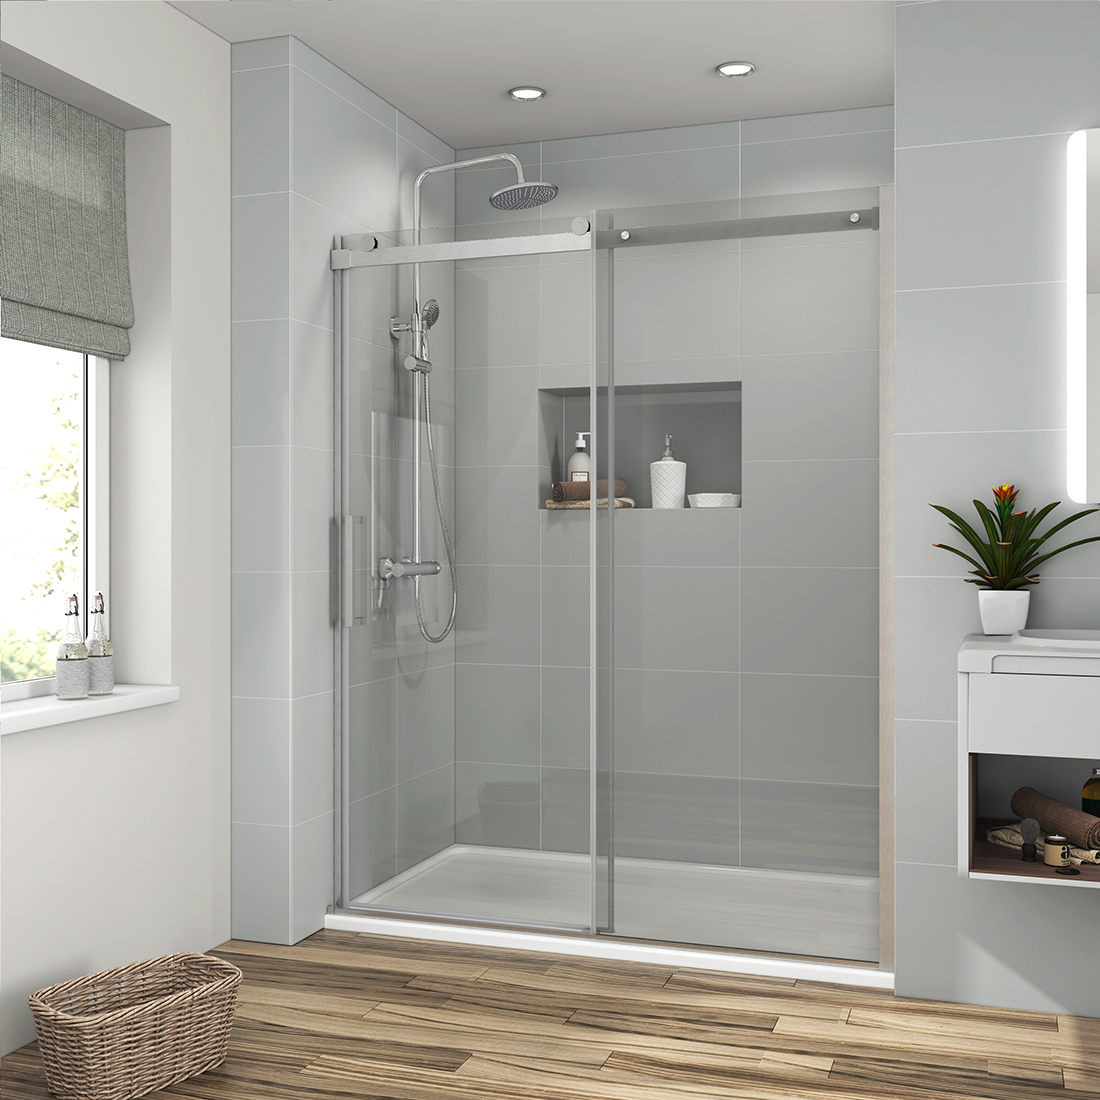 Details About 48 X 72 Frameless Sliding Shower Doors Screen 5 16 Clear Glass Brushed Nickel